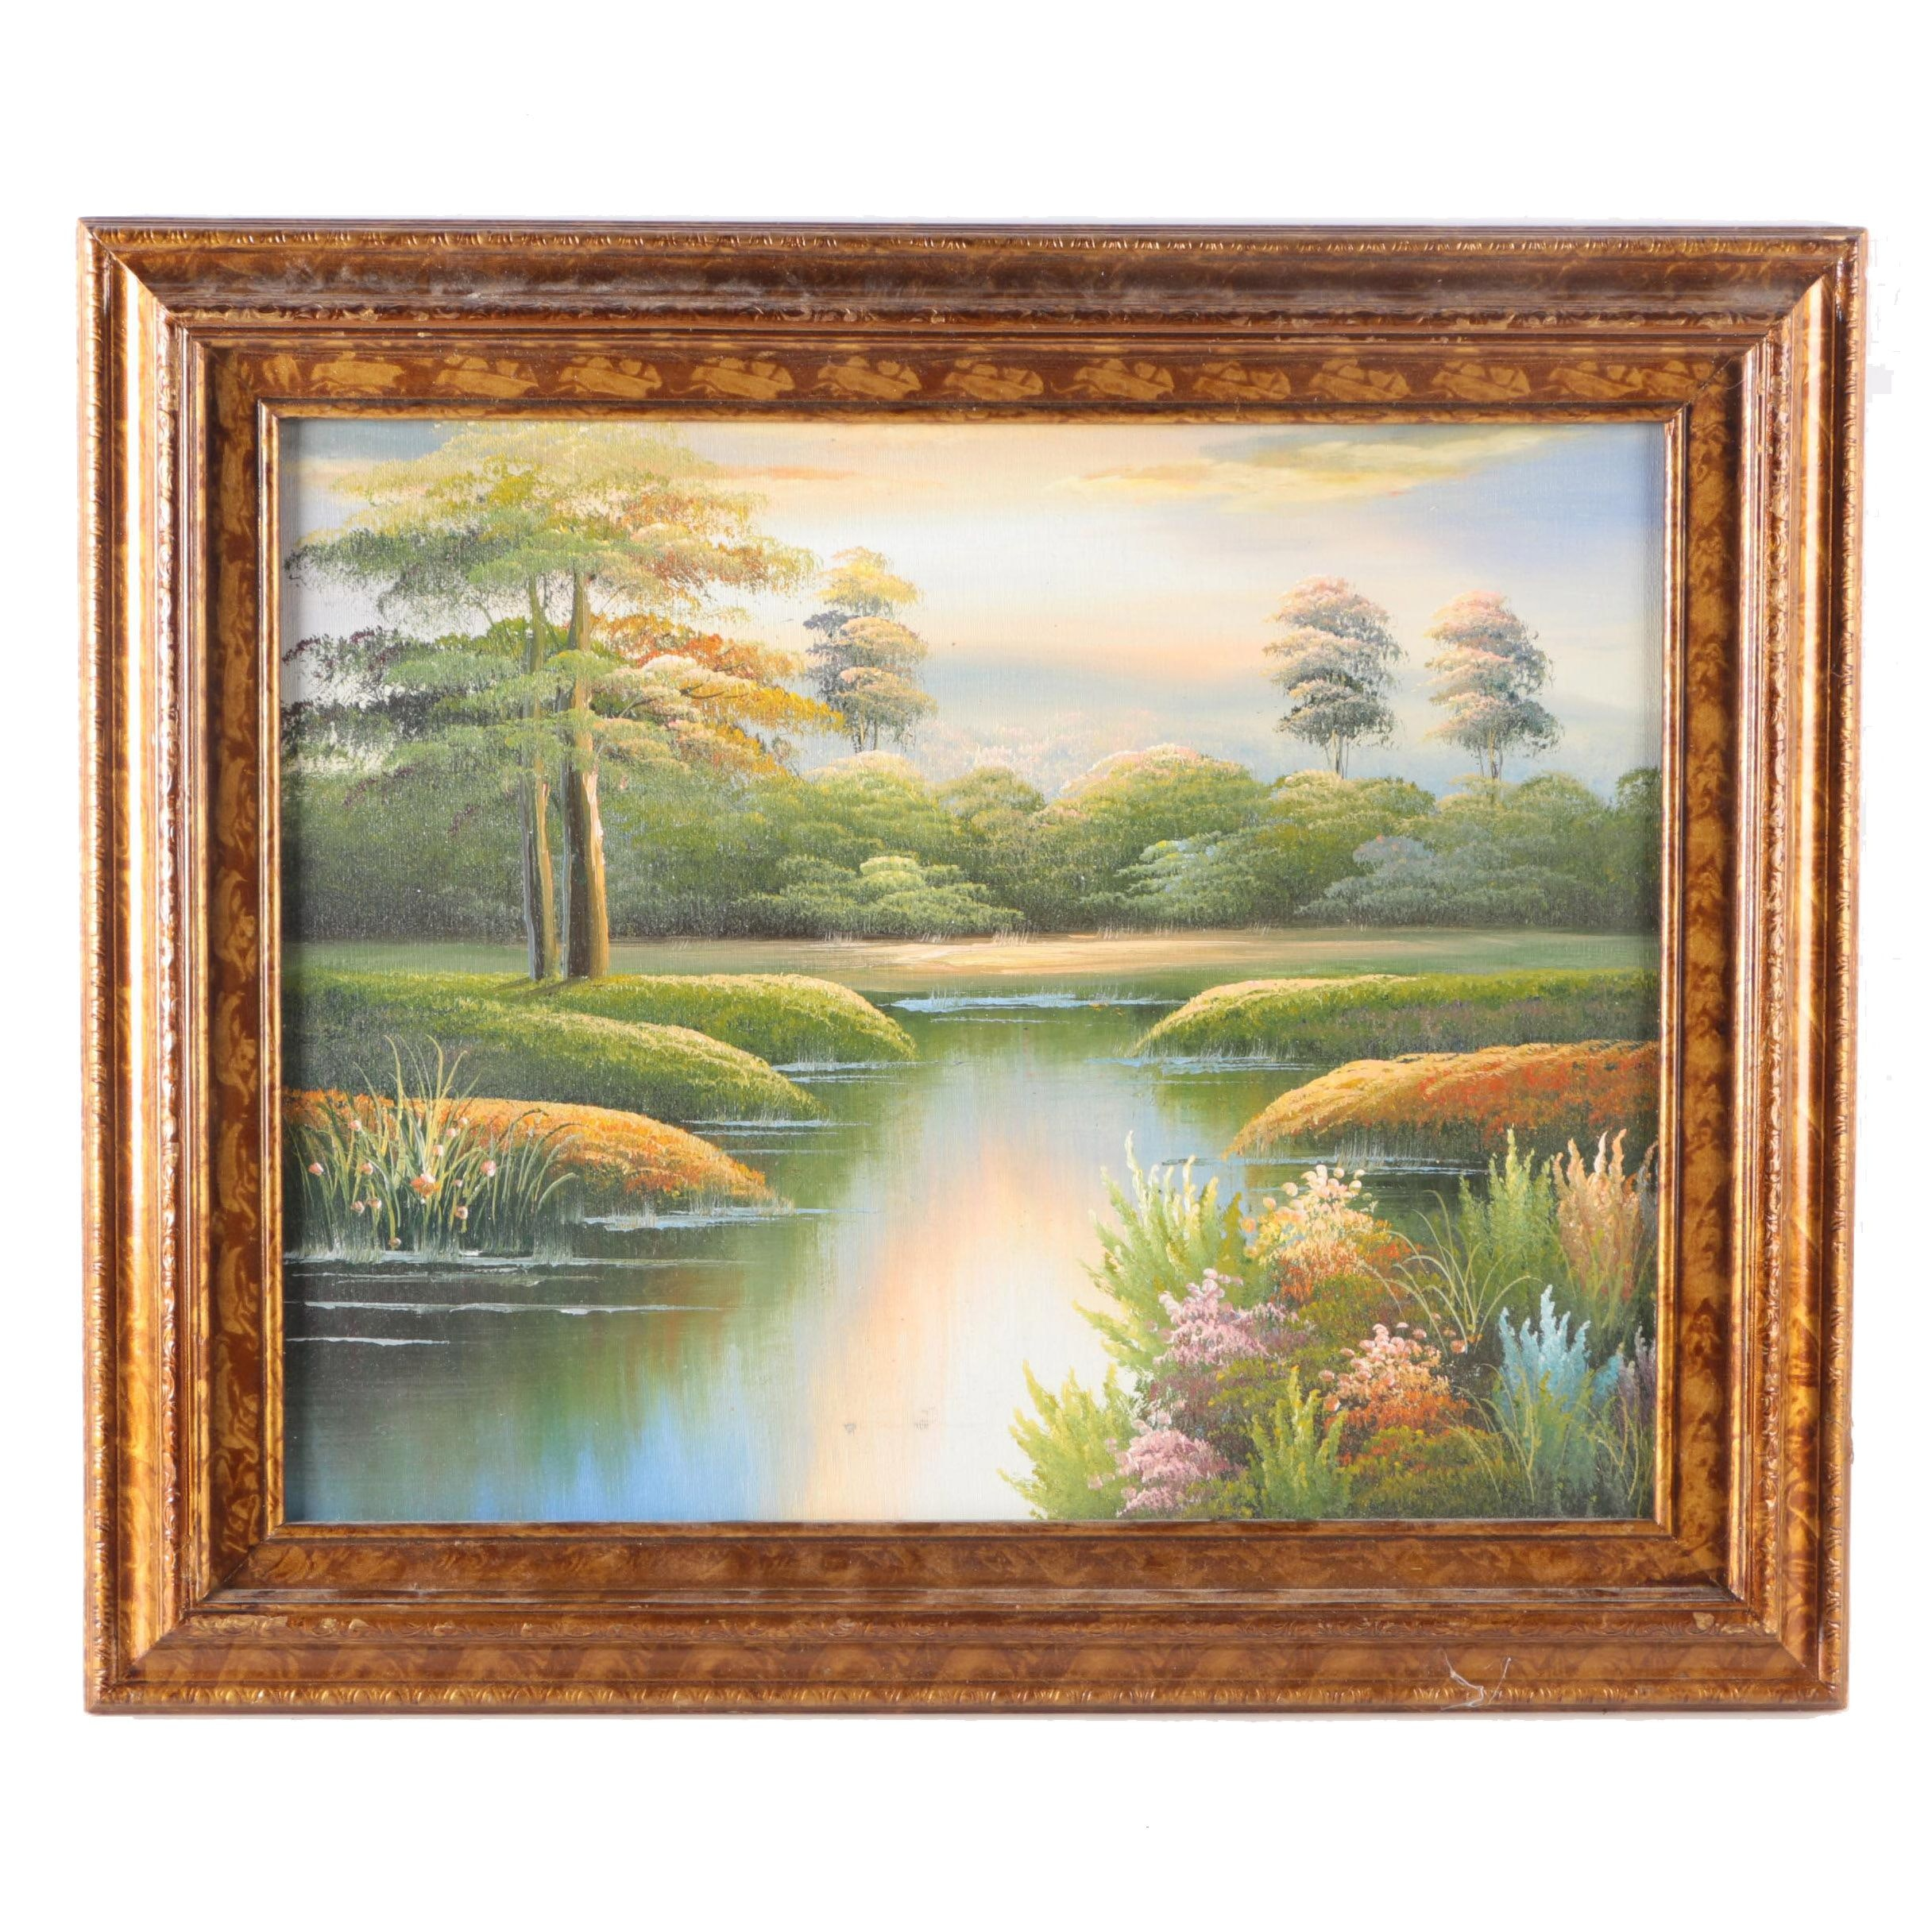 Framed Oil Painting on Canvas of a Landscape